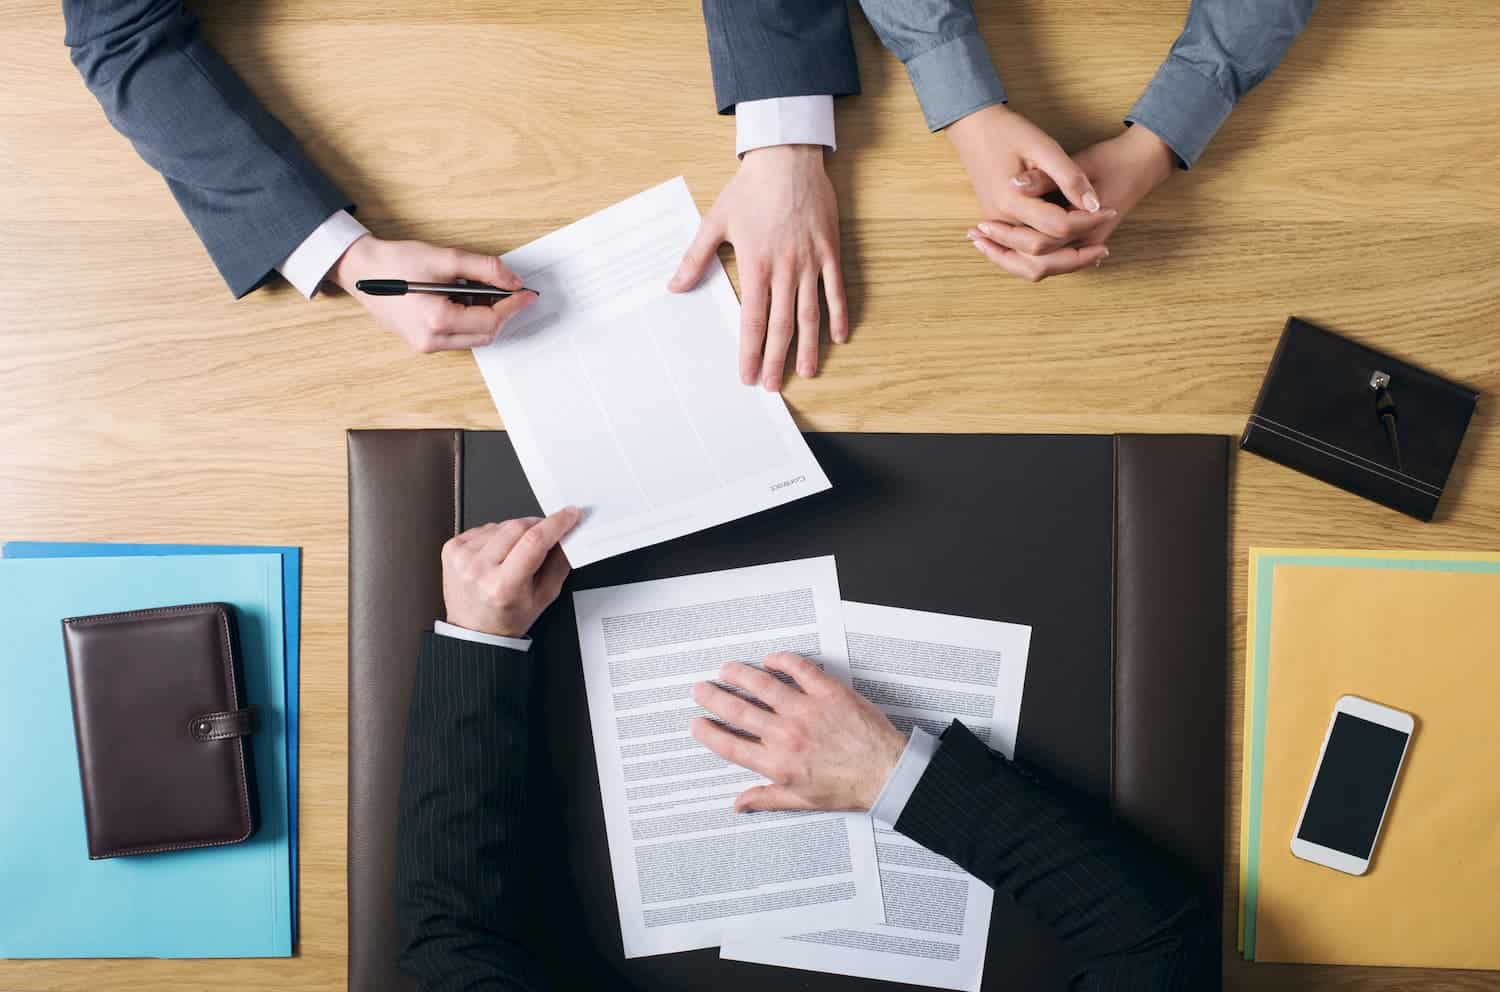 Our Brisbane insurance lawyers team are handling insurance law and personal injuries matter in our practice